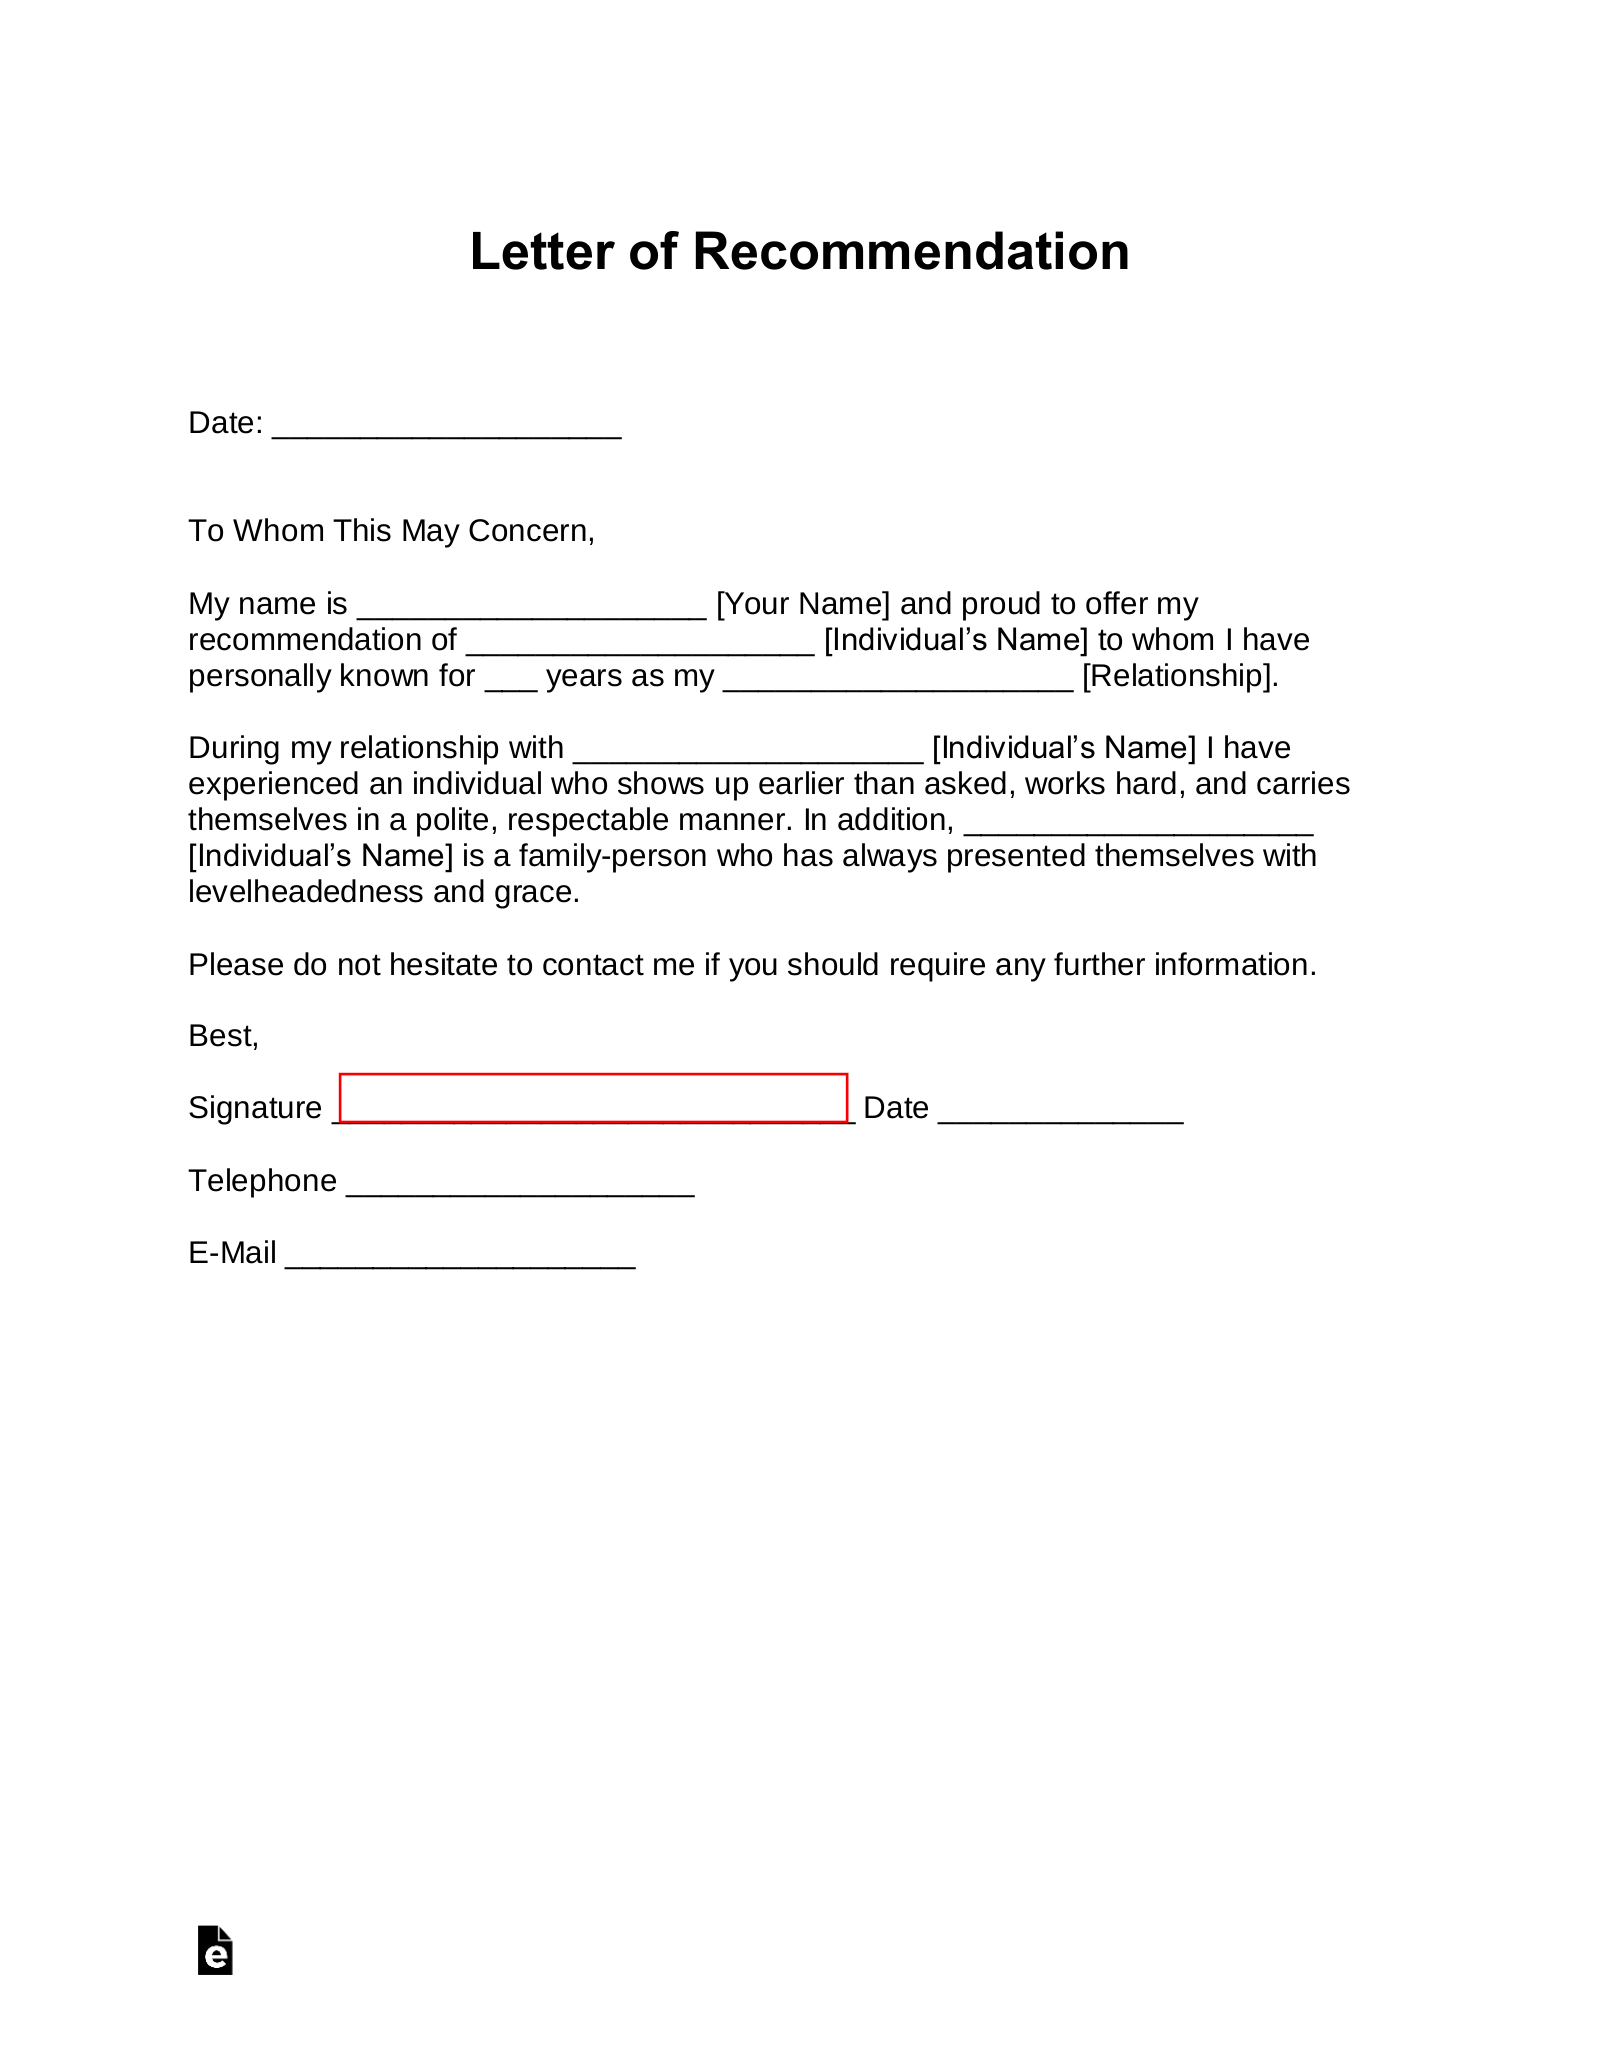 Free Letter of Recommendation Templates - Samples and